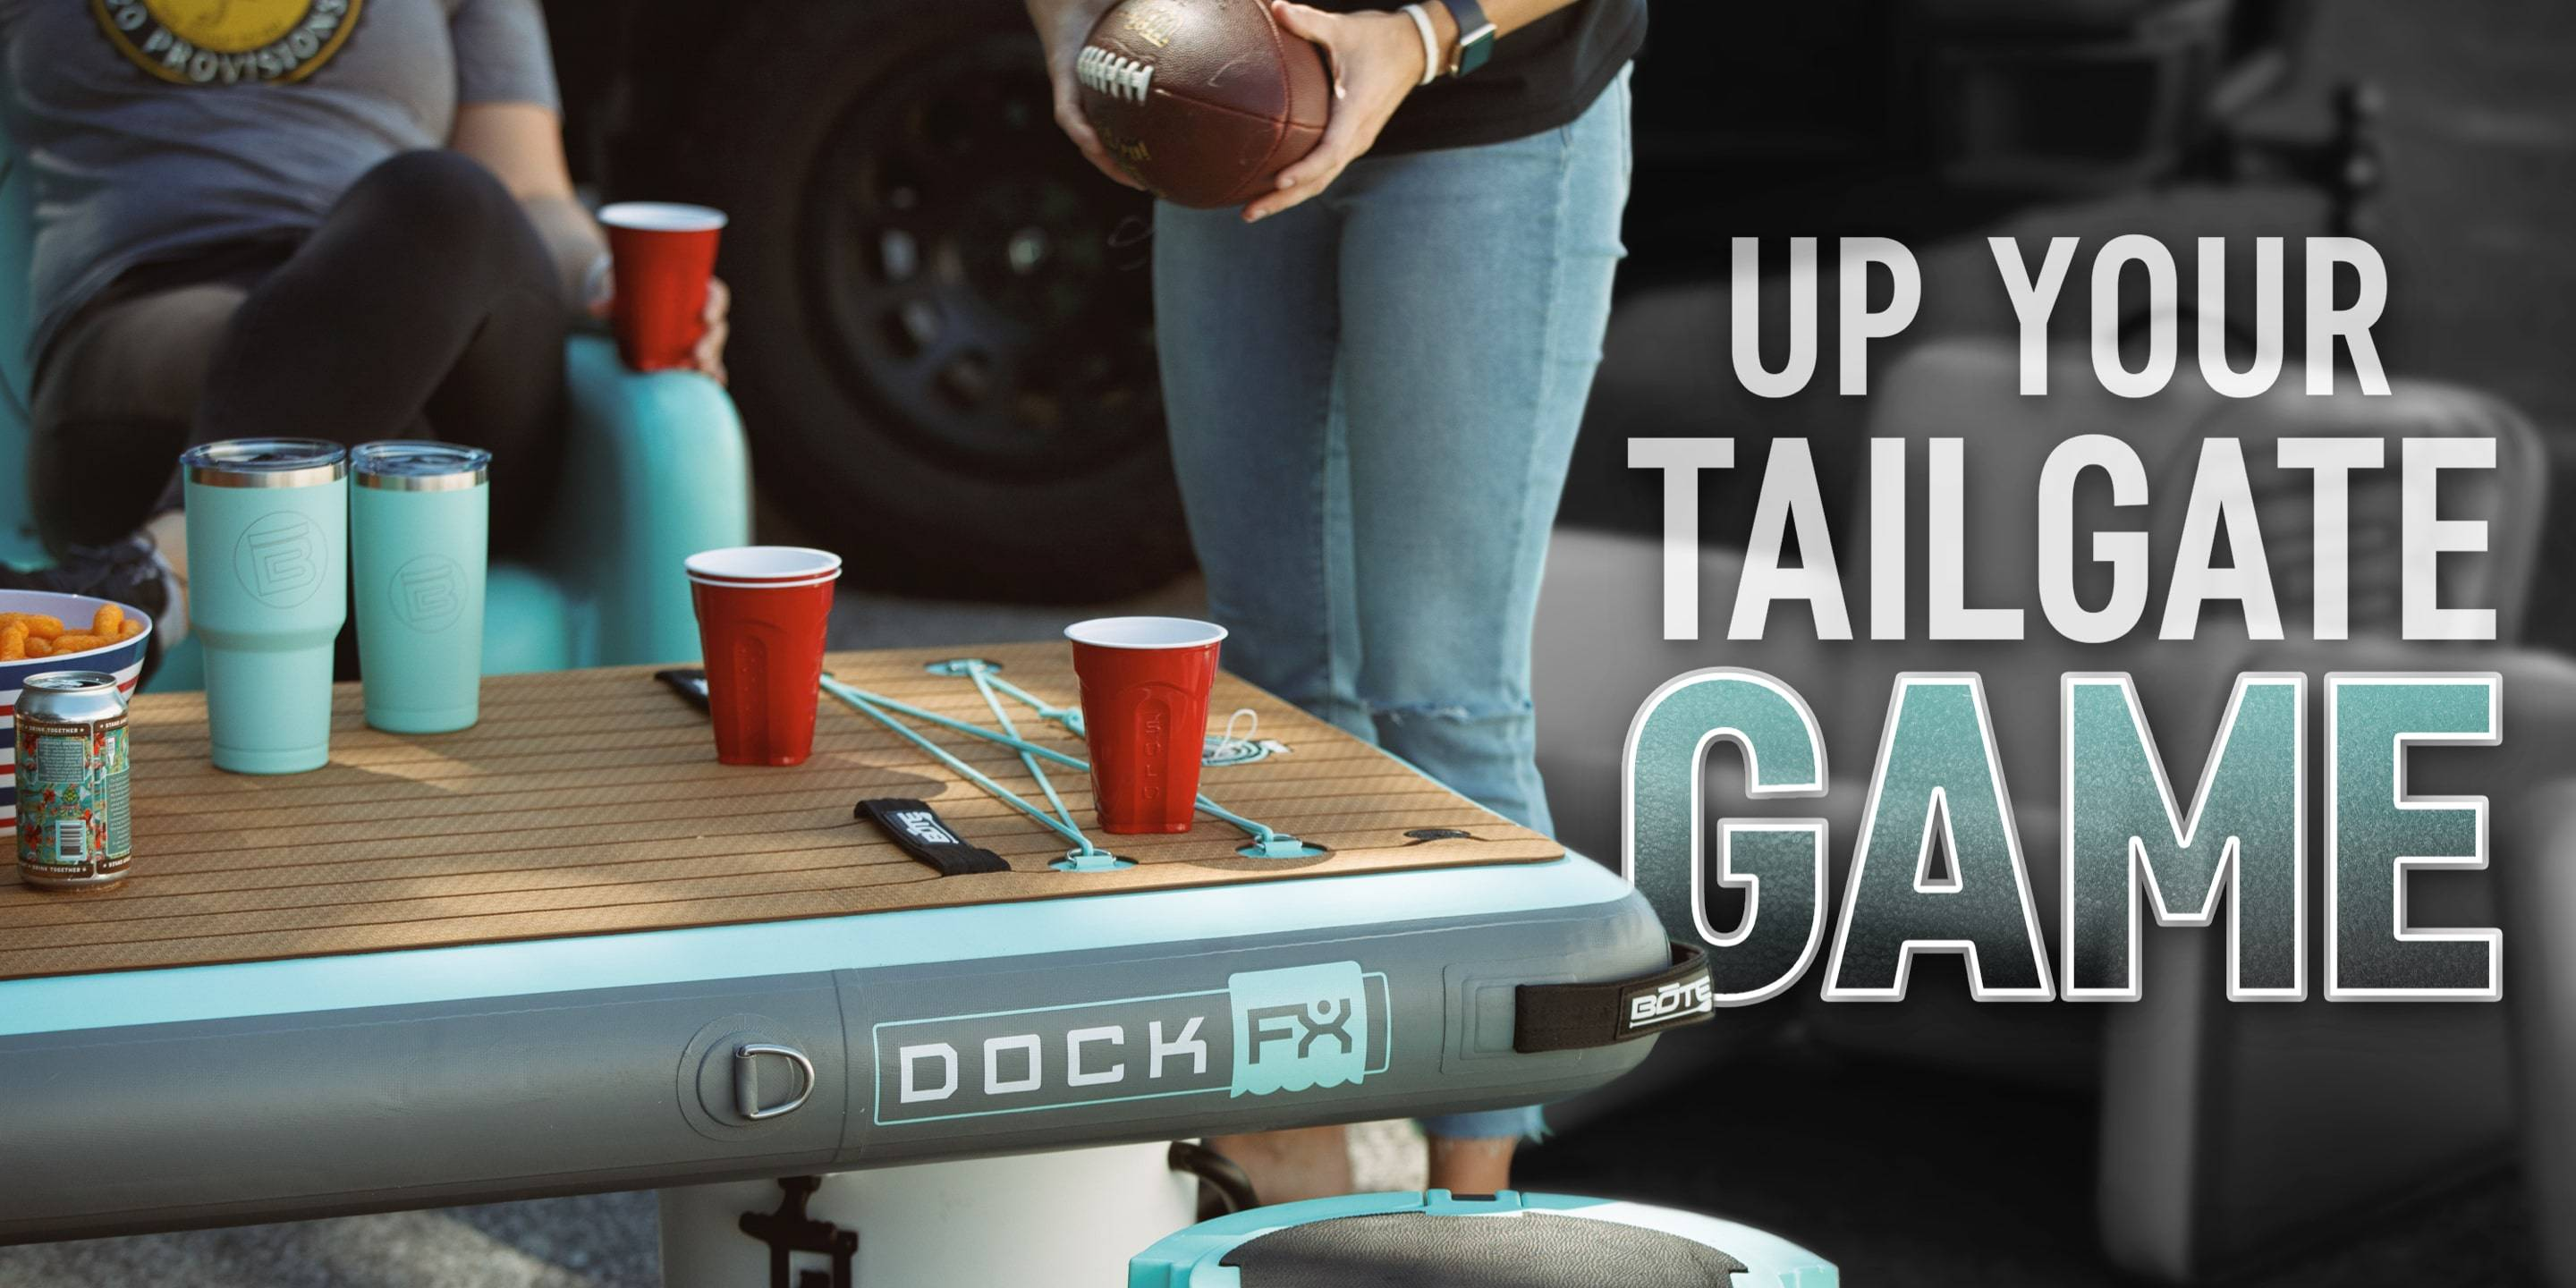 Up your tailgate game